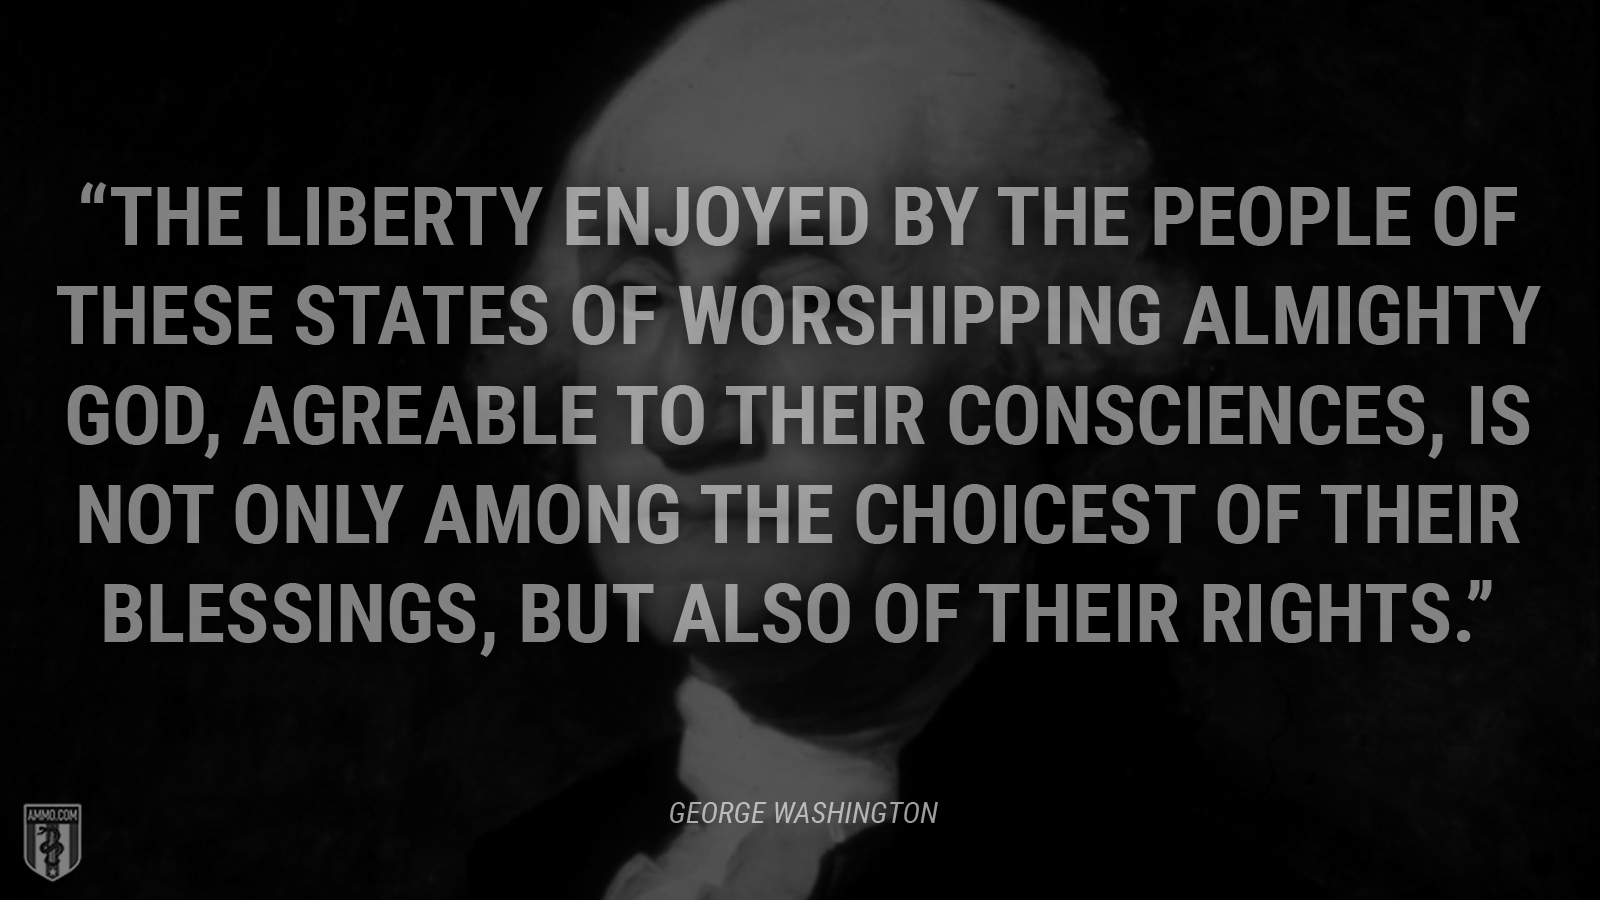 """The liberty enjoyed by the people of these States of worshipping Almighty God, agreable to their consciences, is not only among the choicest of their blessings, but also of their rights."" - George Washington"